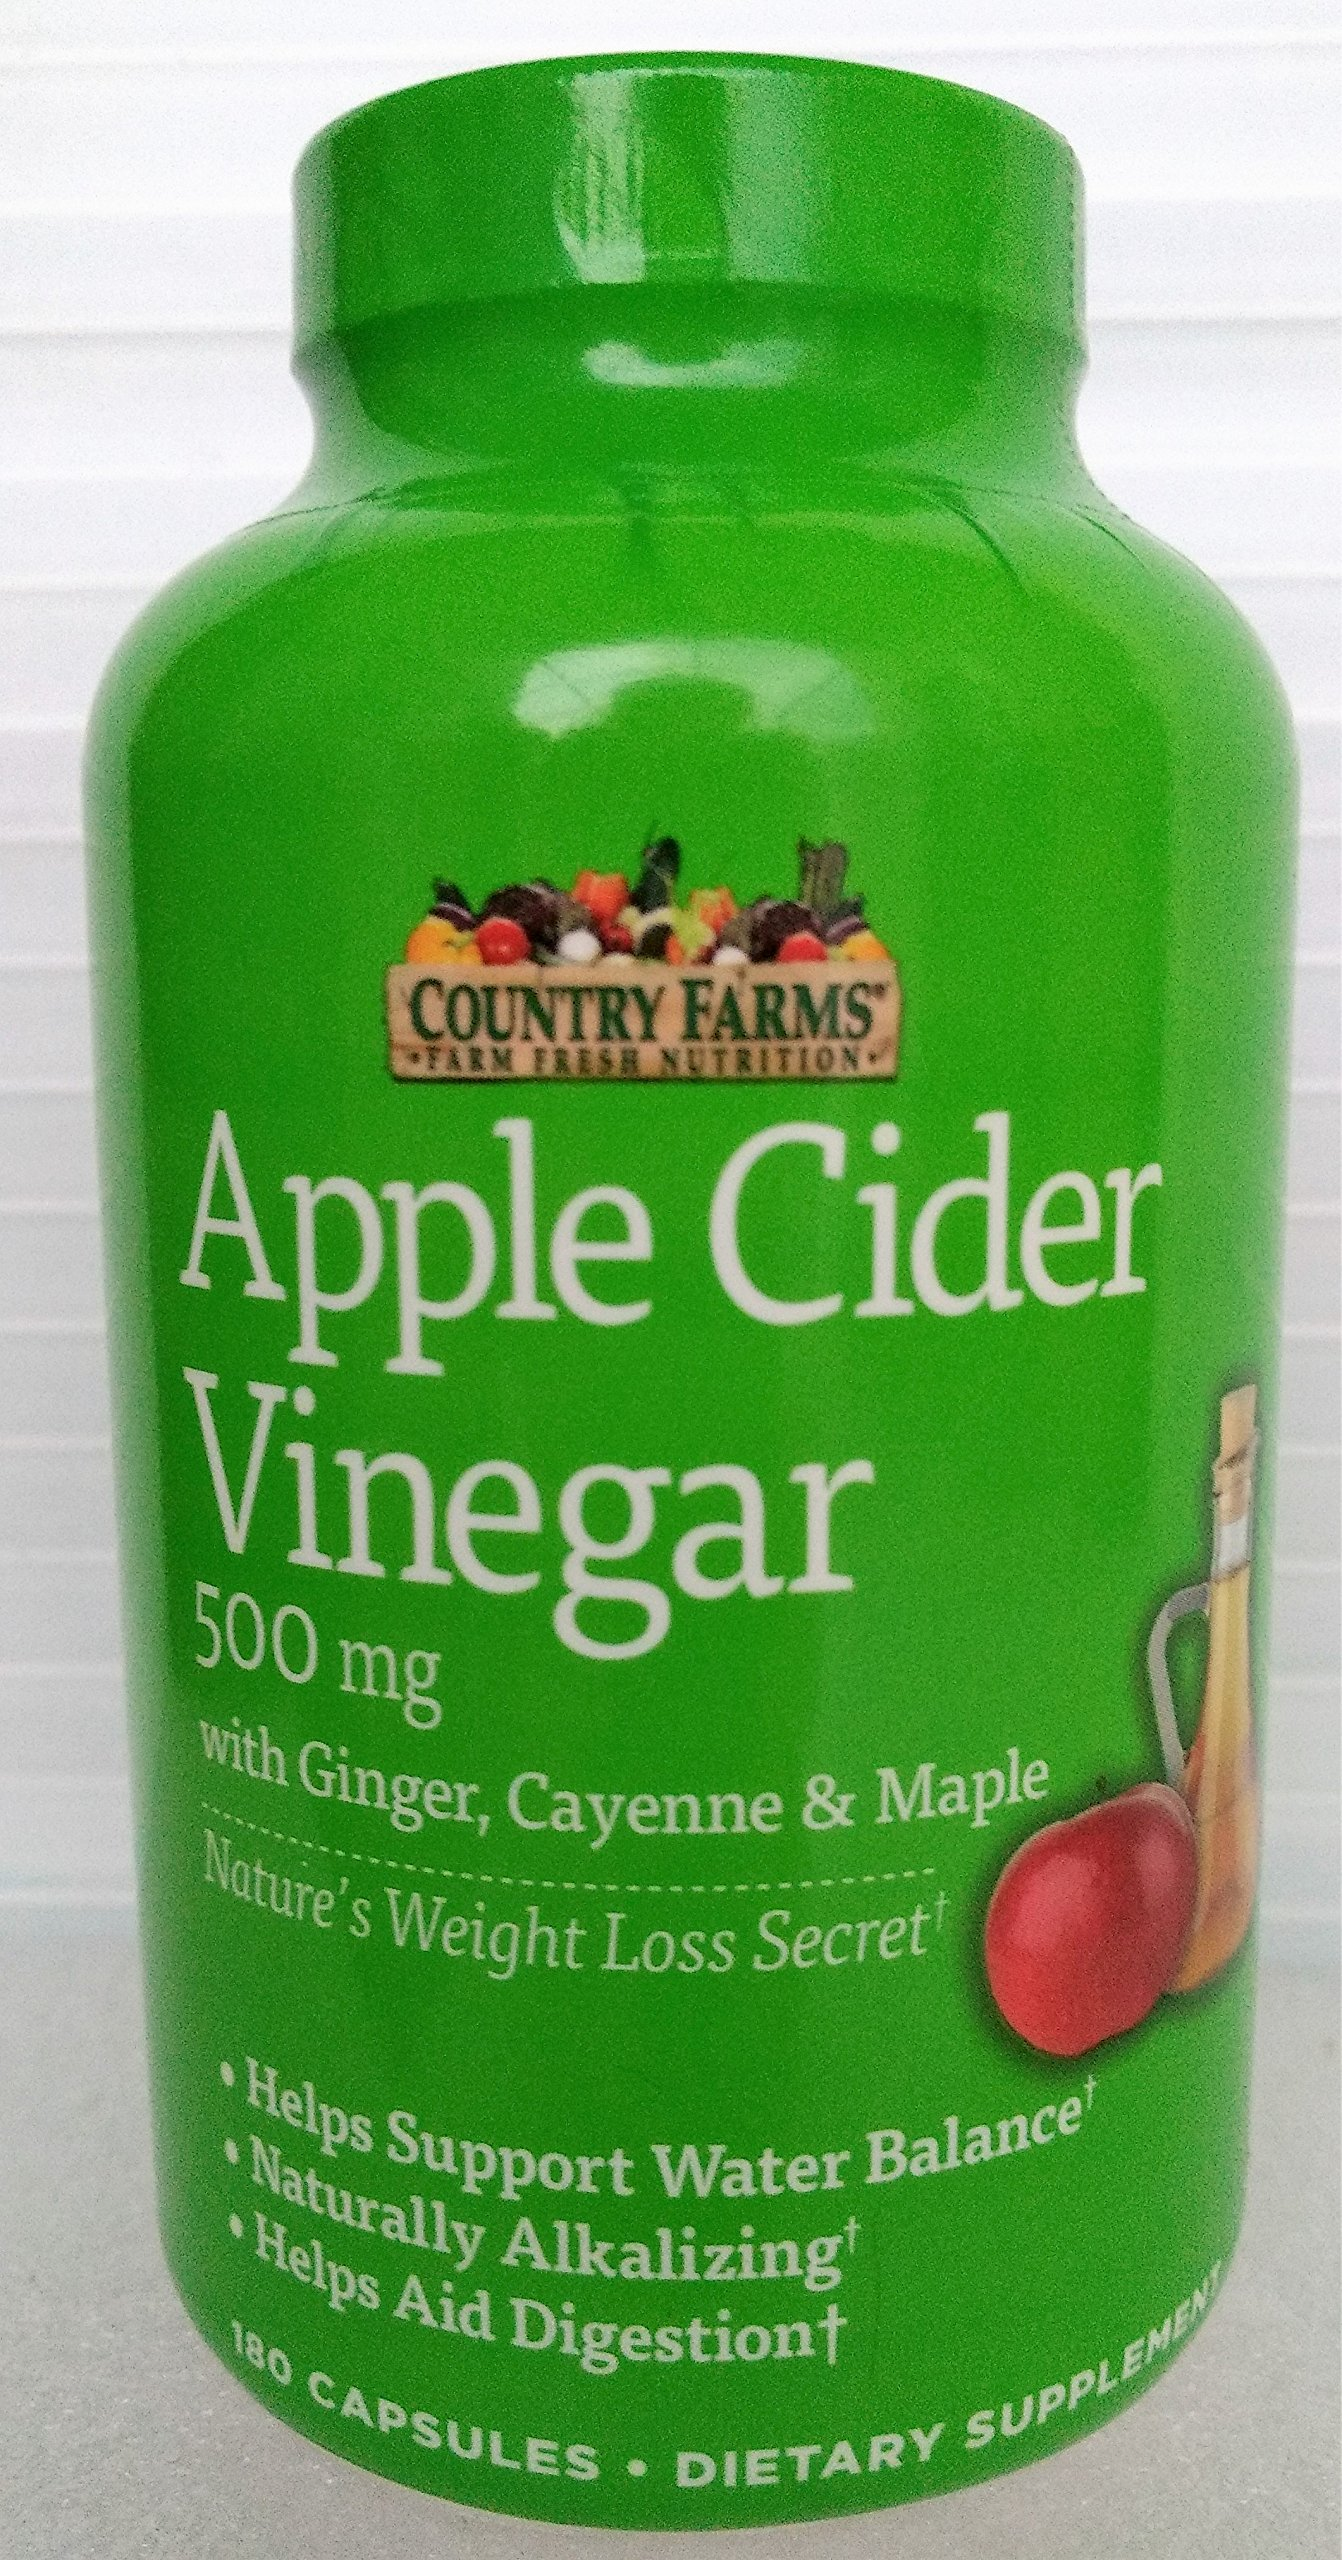 Country Farms Apple Cider Vinegar 500mg 180 capsules with Ginger, Cayenne and Maple by Country Farms (Image #1)